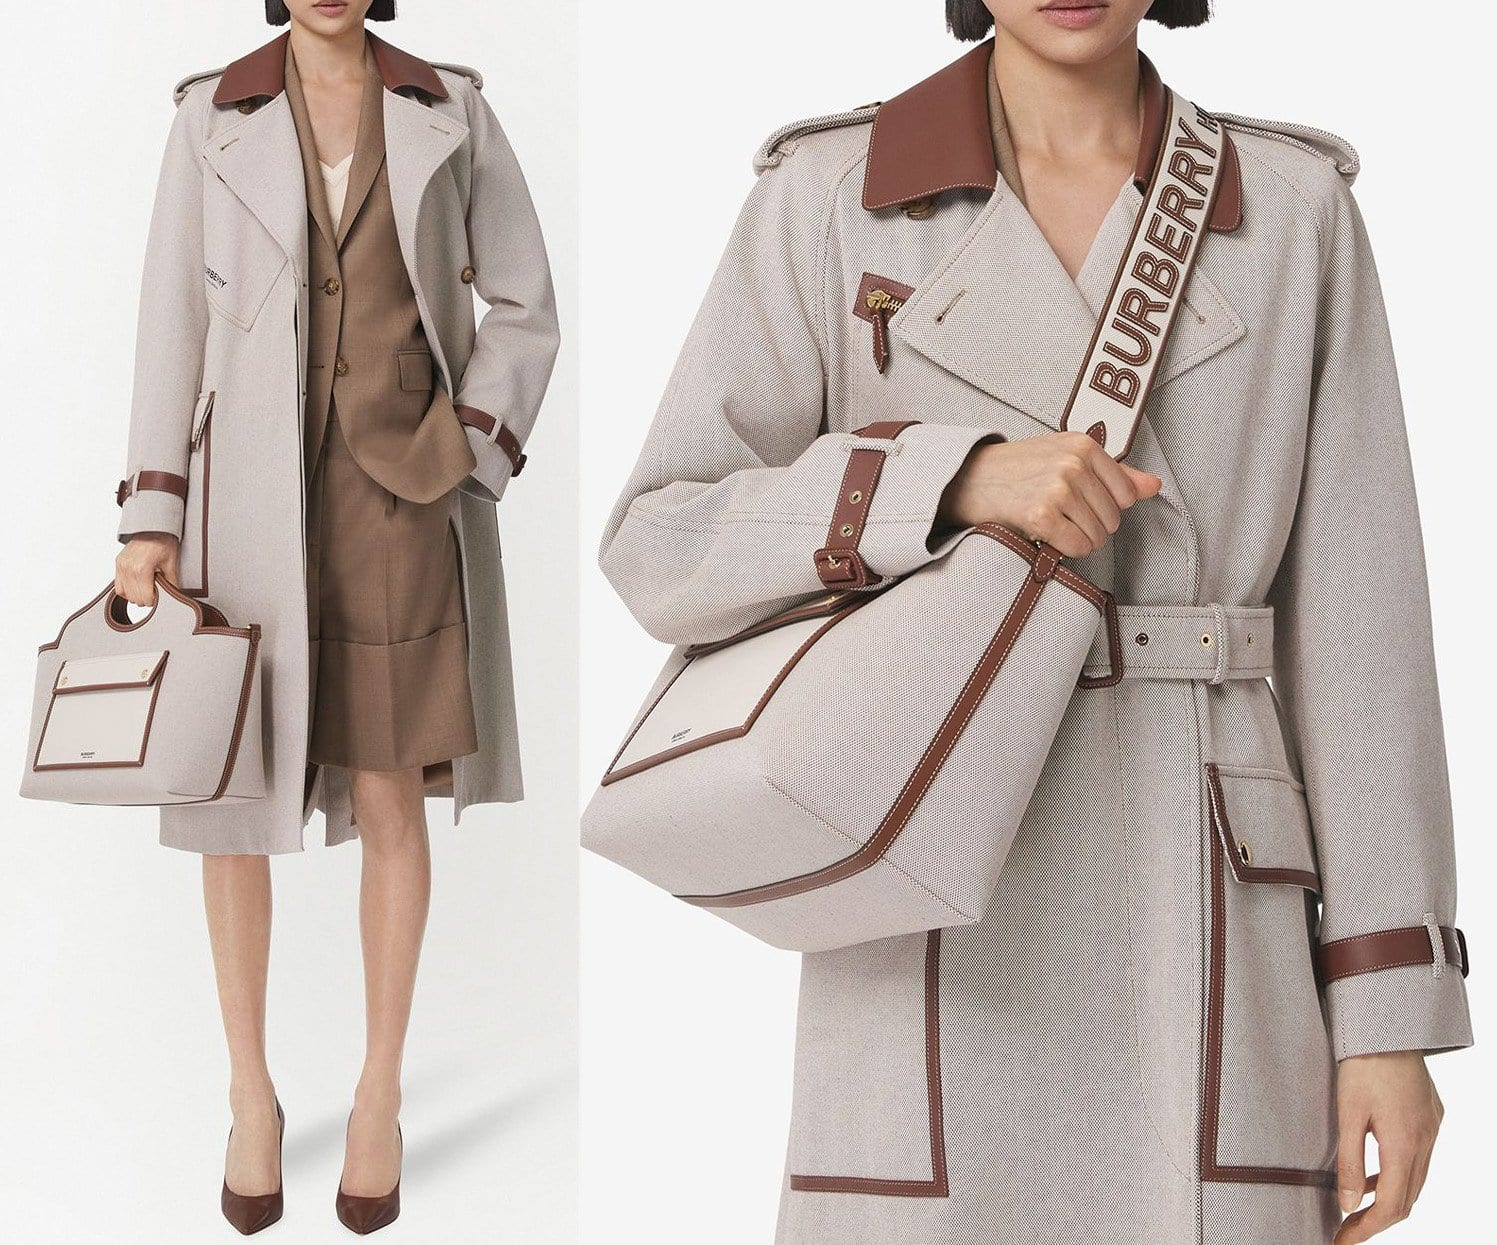 Burberry's Soft Pocket tote is a practical bag that comes with plenty of pockets, cutout top handles, and a detachable shoulder strap